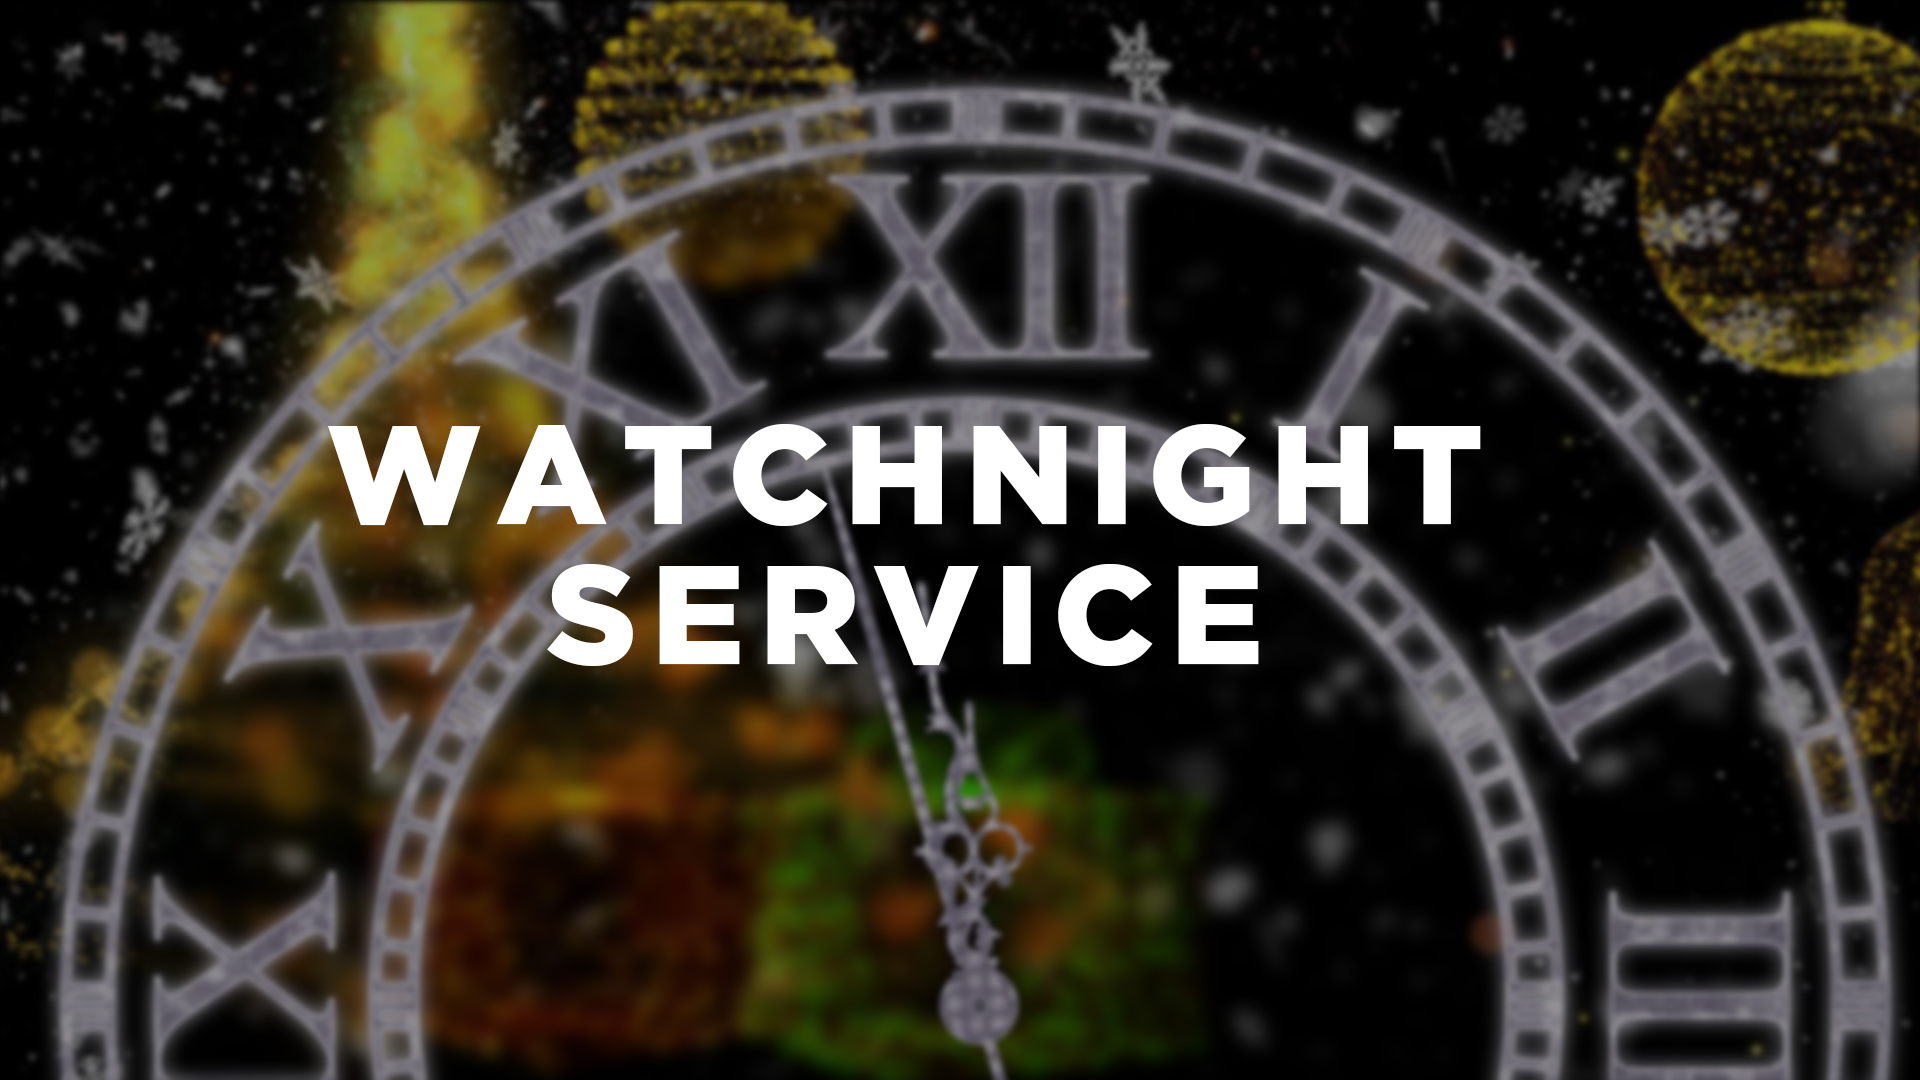 The Well - Watchnight